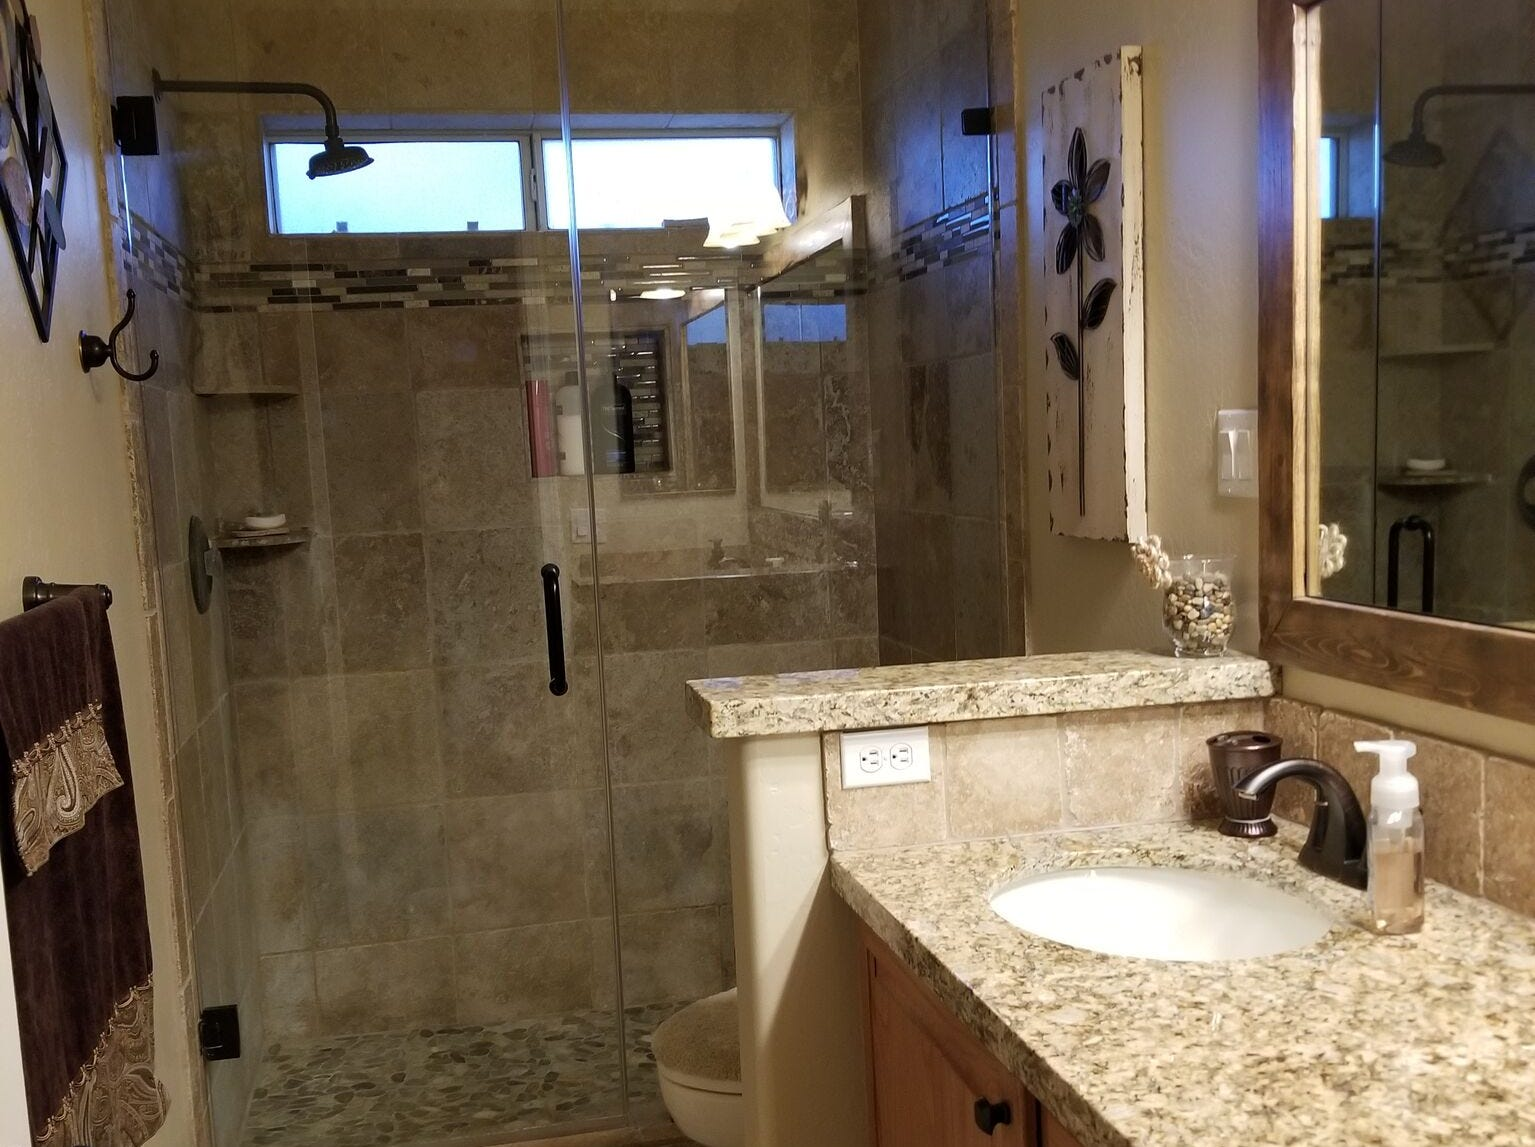 Bruce LeBoeuf redid the guest bathroom, including replacing a tub with a shower and encasing the mirror with a wood frame.